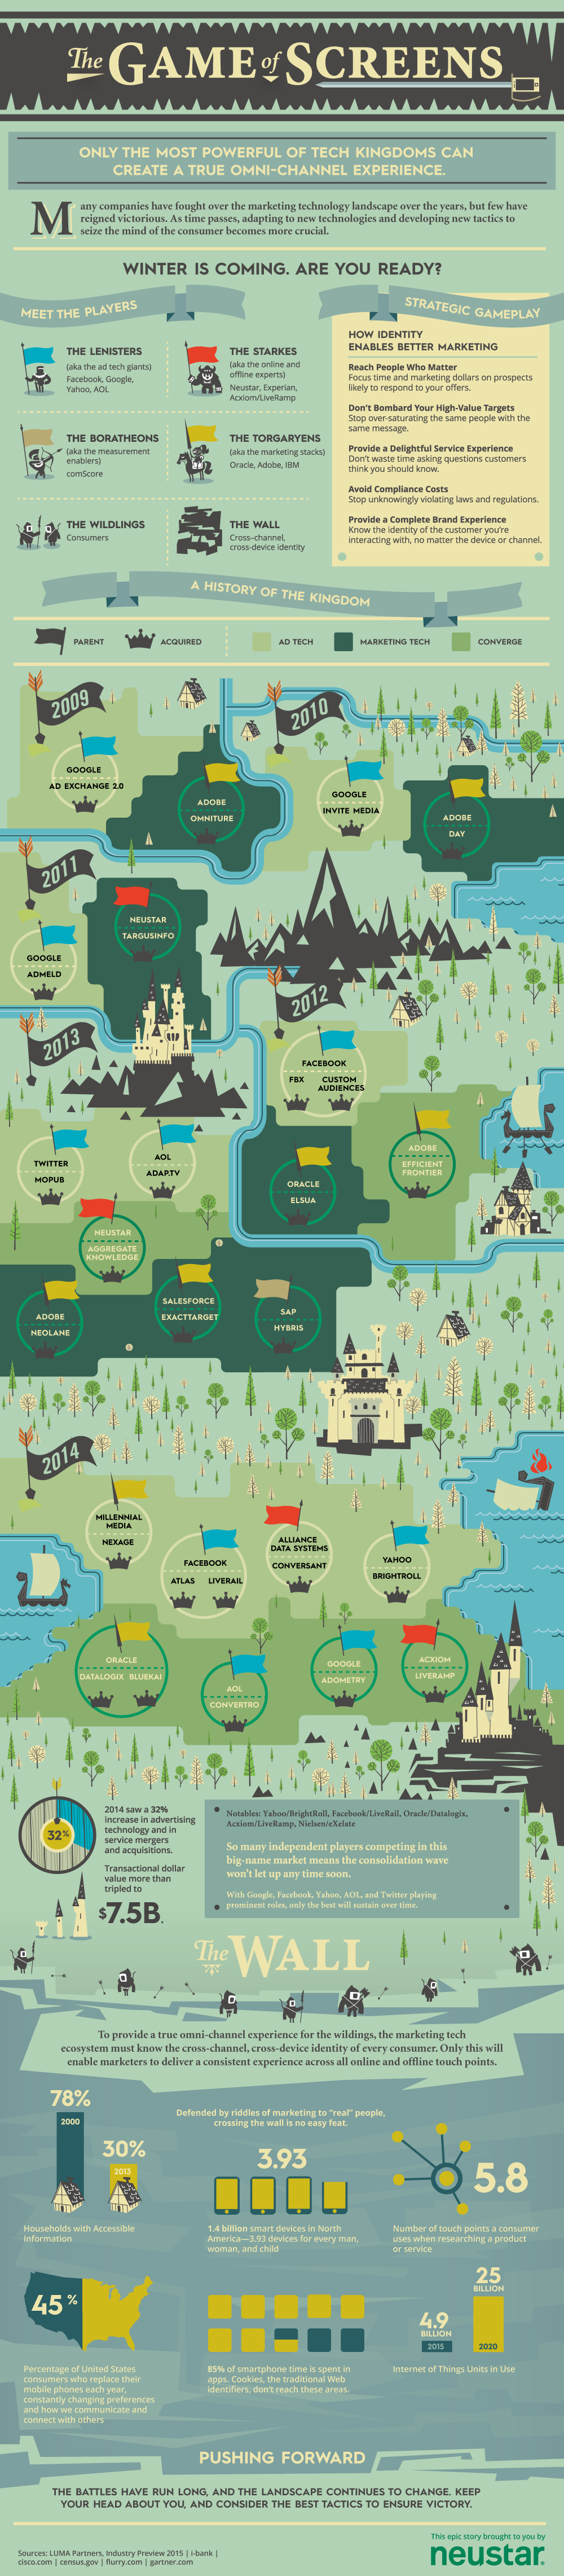 Marketing Technology Landscape Game of Screens Infographic